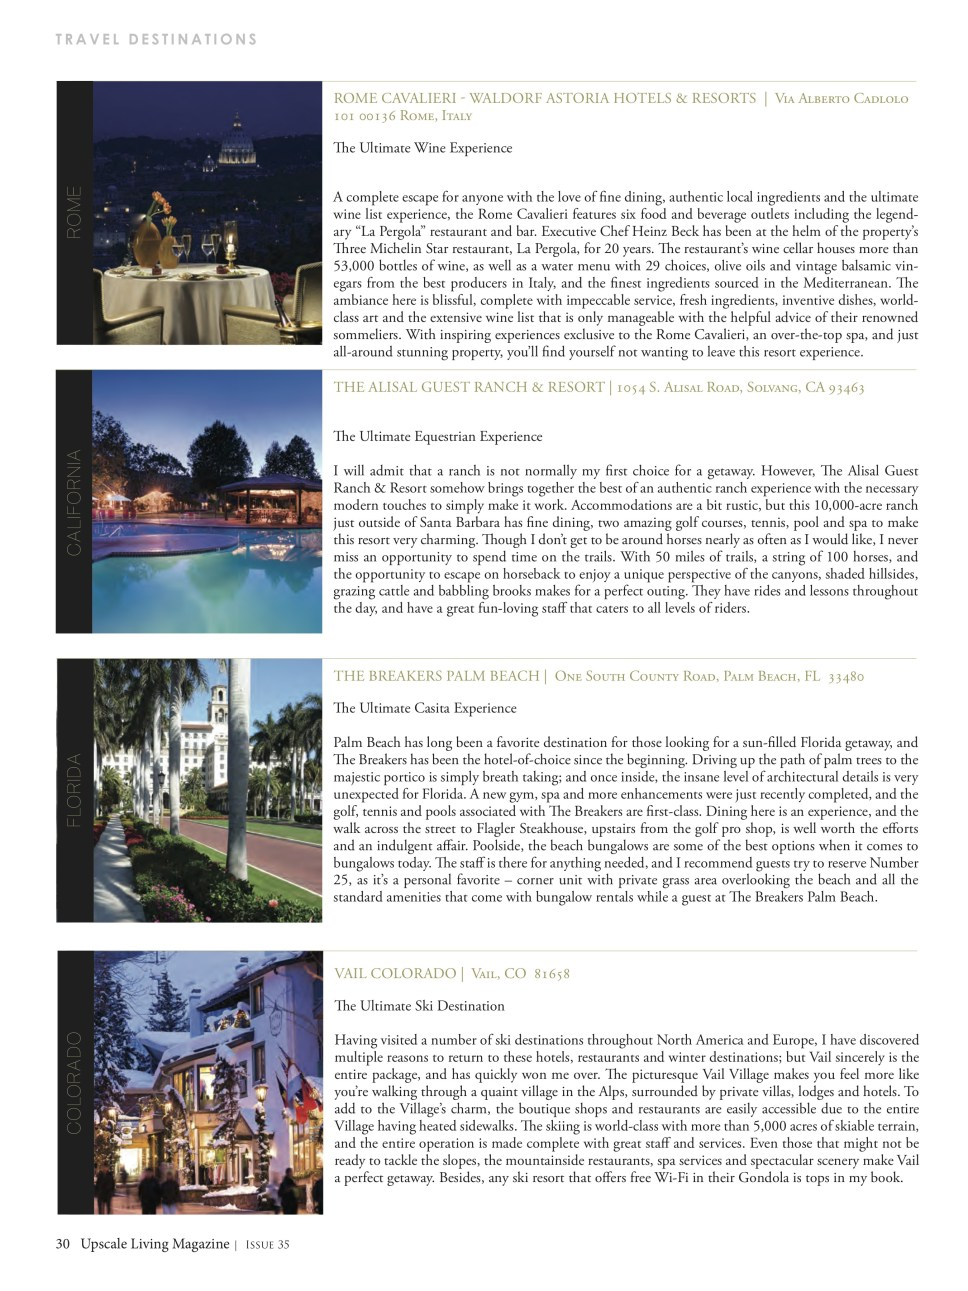 Upscale-Living_DMB_Travel-Experiences_4